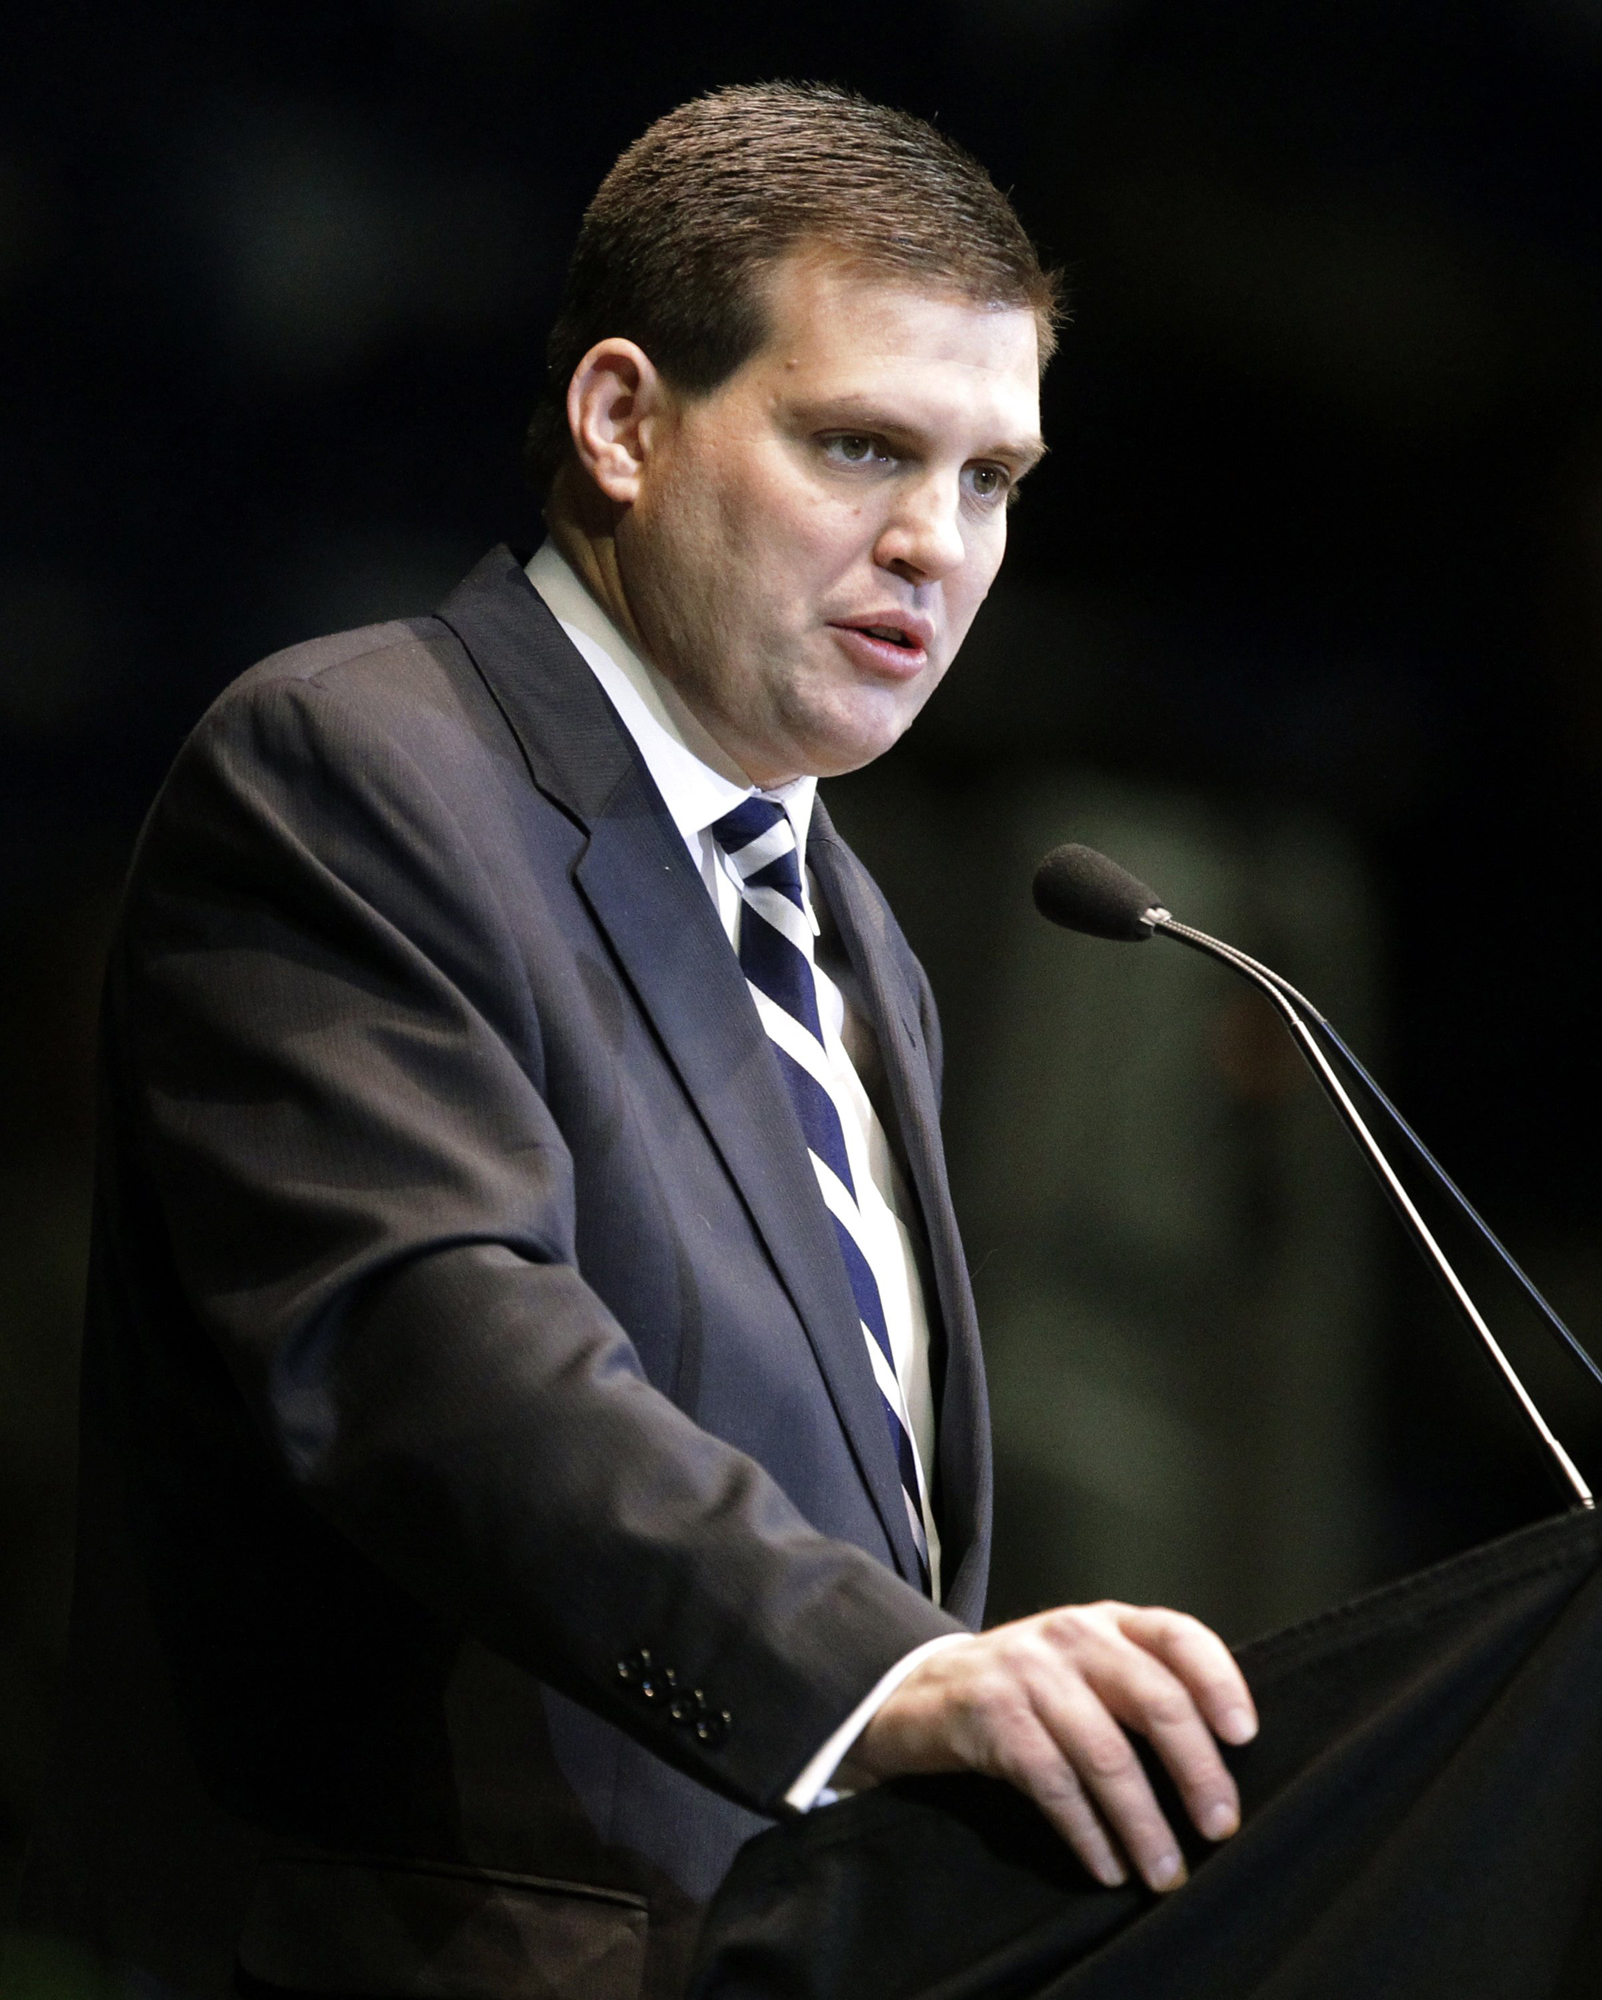 Jay Paterno, son of former Penn State football head coach Joe Paterno, speaks during a memorial service for his father in State College, Pa., in 2012.